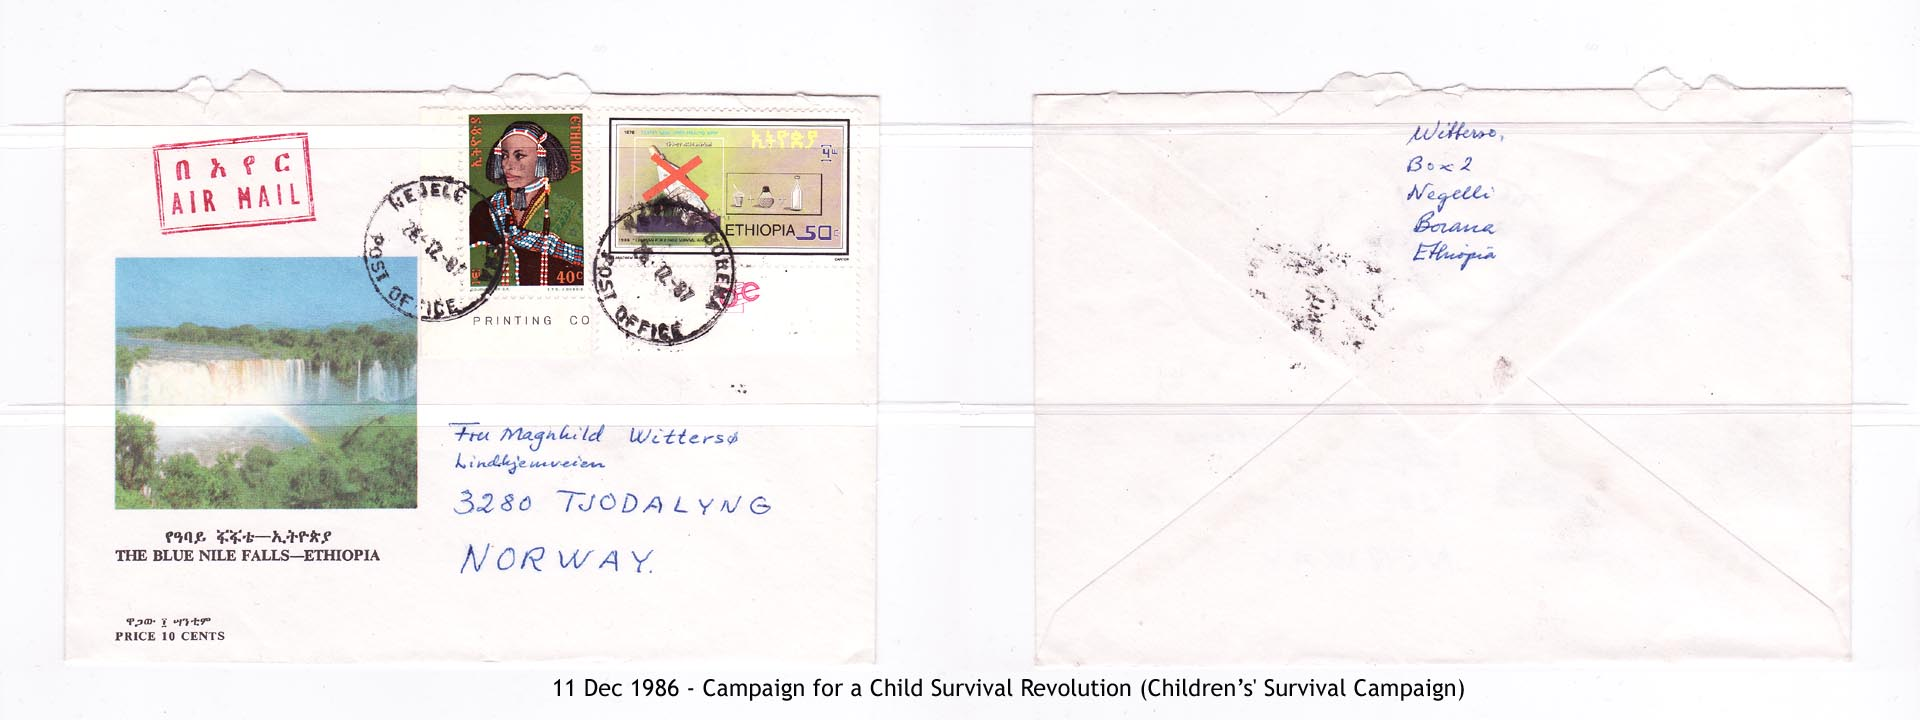 19861211 - Campaign for a Child Survival Revolution (Children's' Survival Campaign)